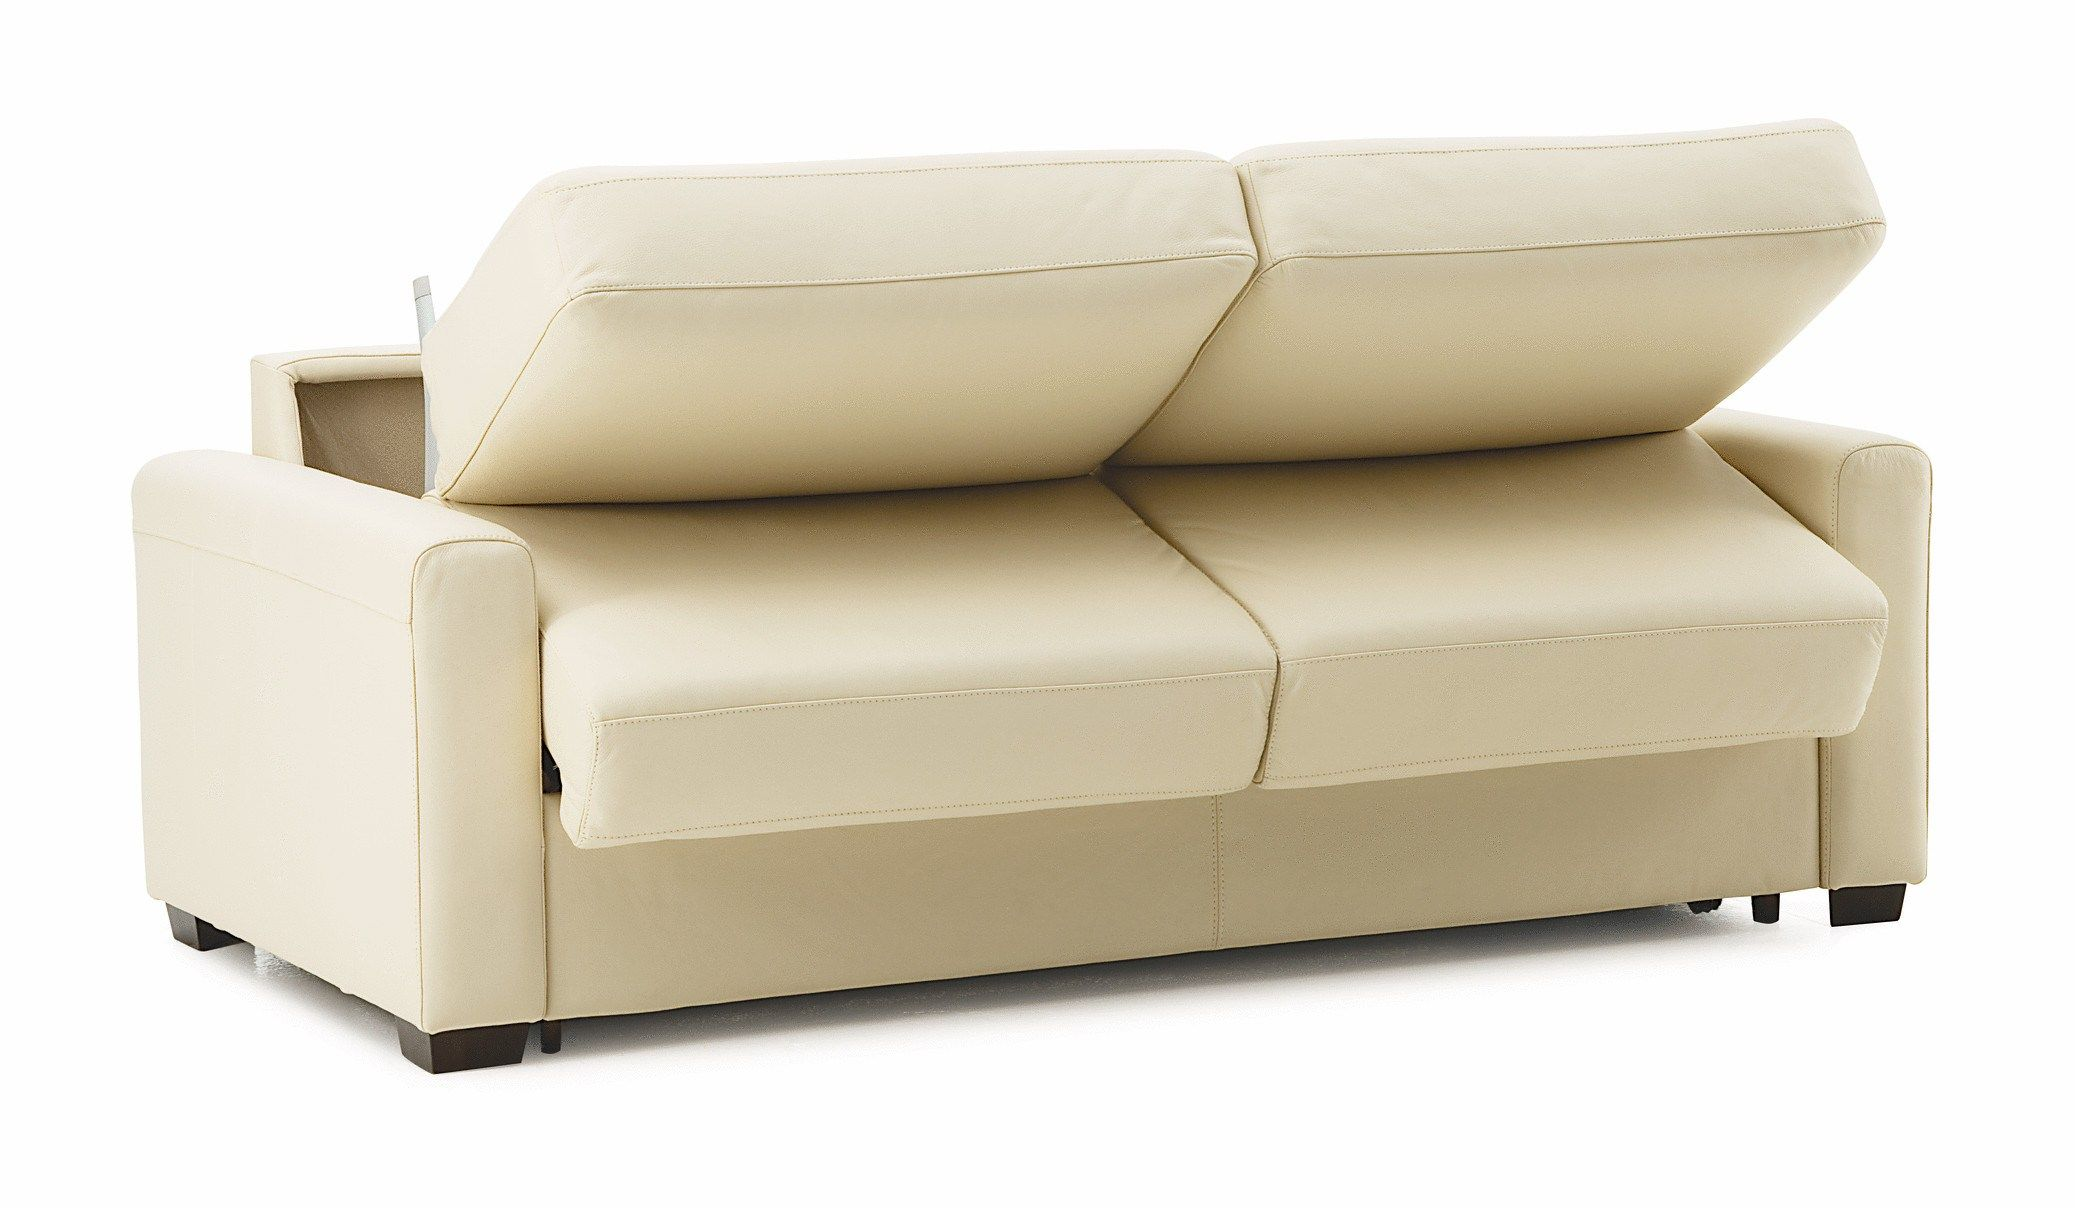 Groovy Best Sleeper Sofa Sleeper Sofa Sleeper Sofa Mattress Interior Design Ideas Inamawefileorg